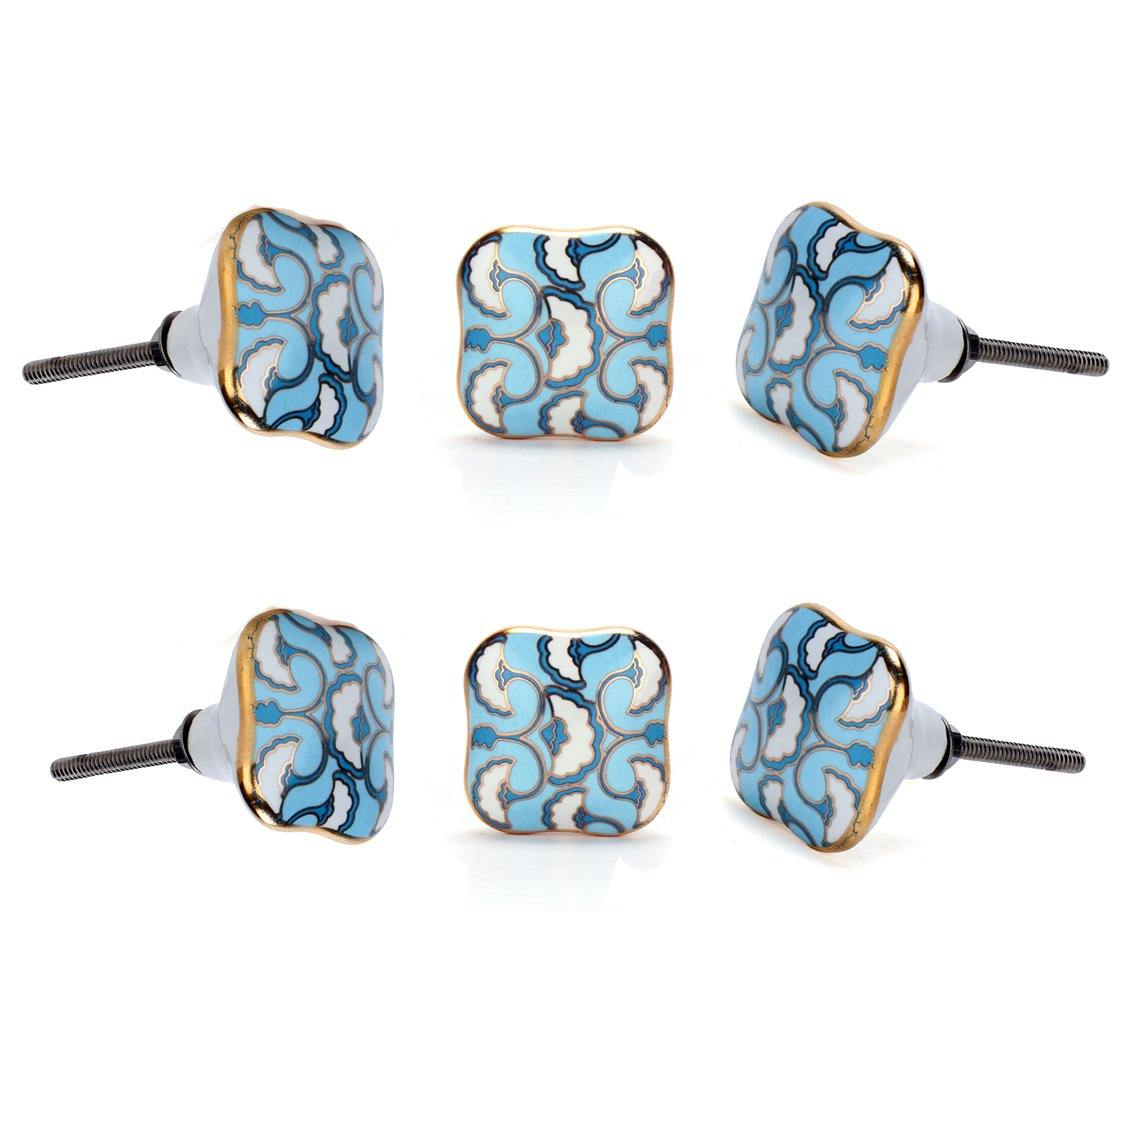 Cadia Ceramic Knob ( Set Of 6 ) - Perilla Home